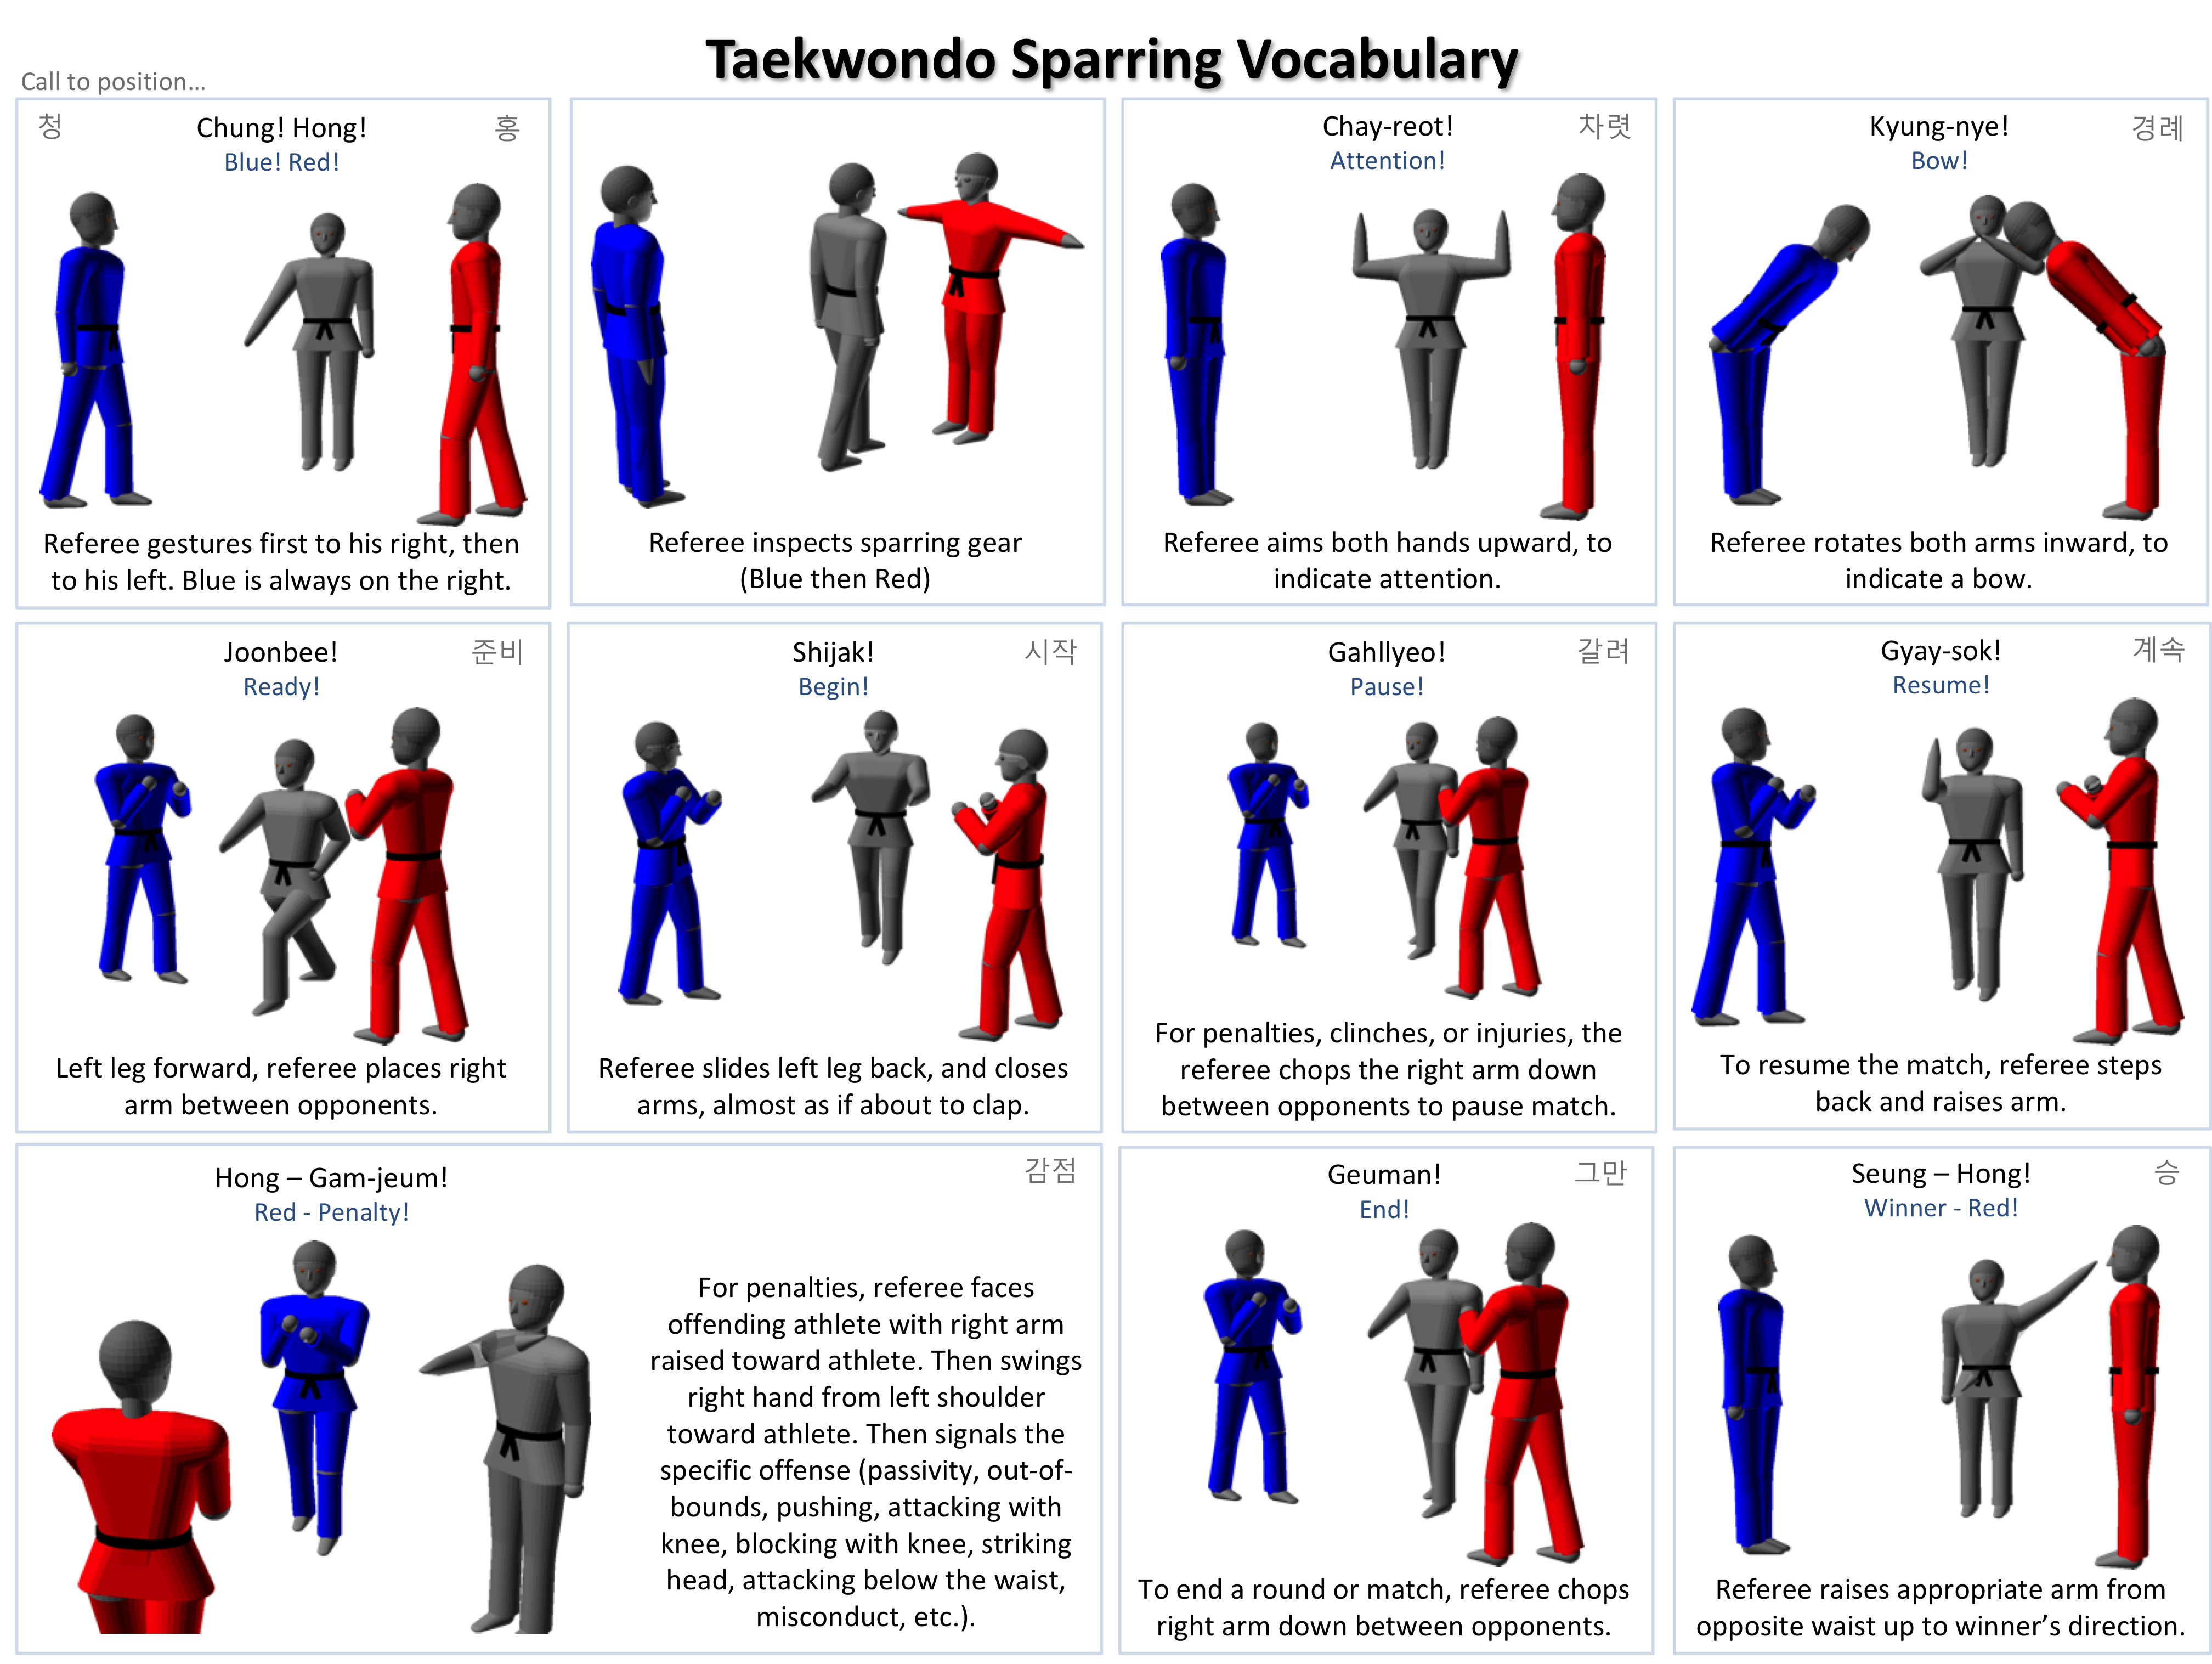 Taekwondo Free Sparring Wiki Fandom Powered By Wikia How To Diagram Of Tie Shoes The Referee Then Slides Left Foot Back As If Into A Tiger Stance While Bringing Both Arms Out Side Says Shee Jahk Begin